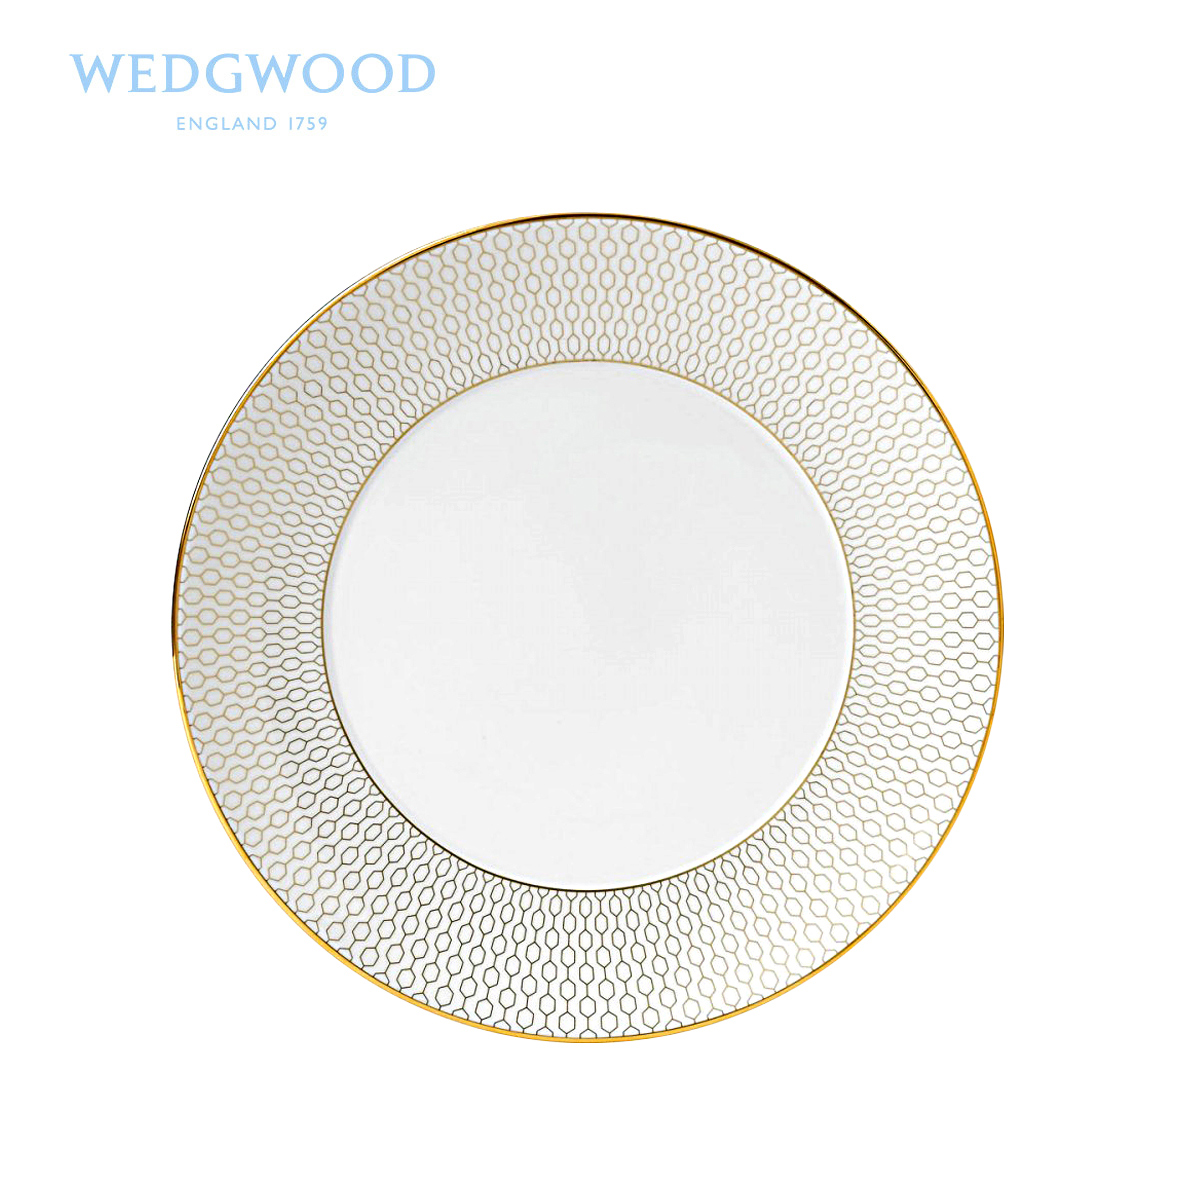 WEDGWOOD waterford WEDGWOOD Arris iris white 20 cm series flat ipads porcelain/cold dish